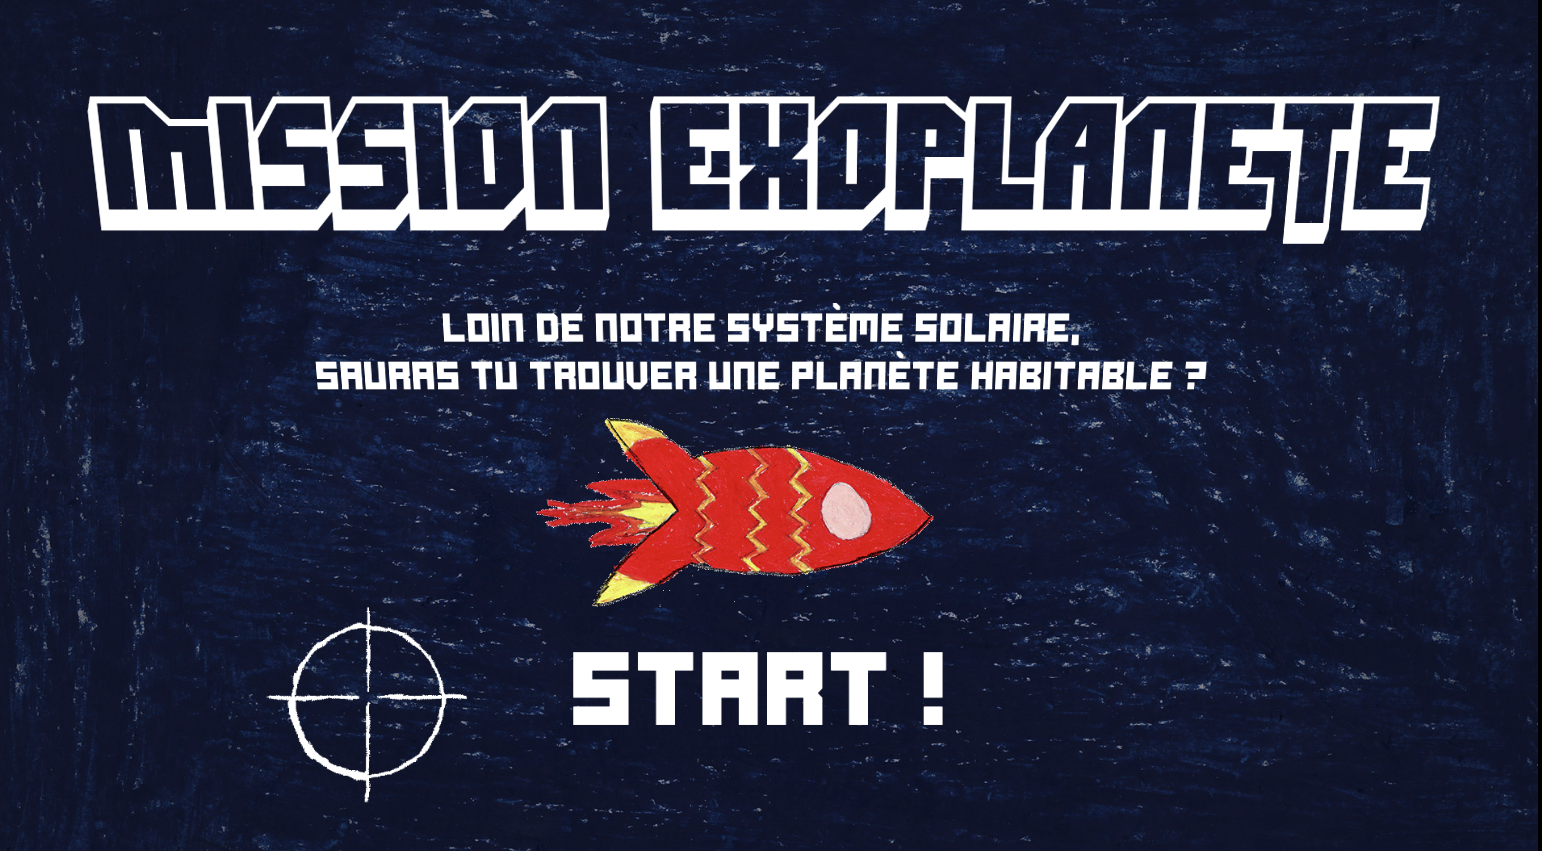 Mission Exoplanets